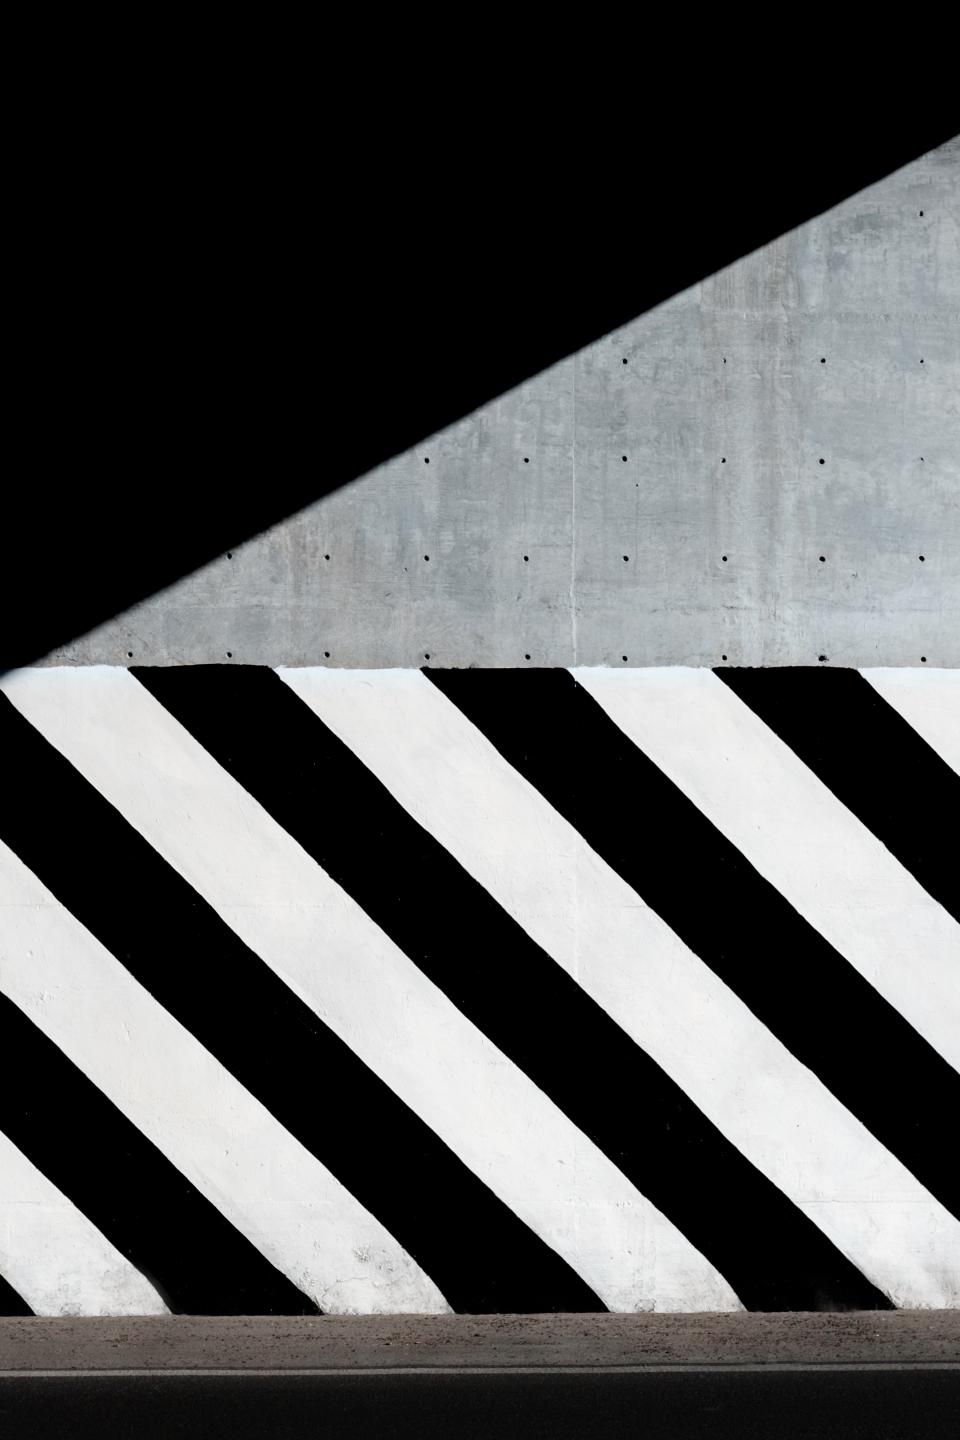 black white concrete paint shadow wall city urban road